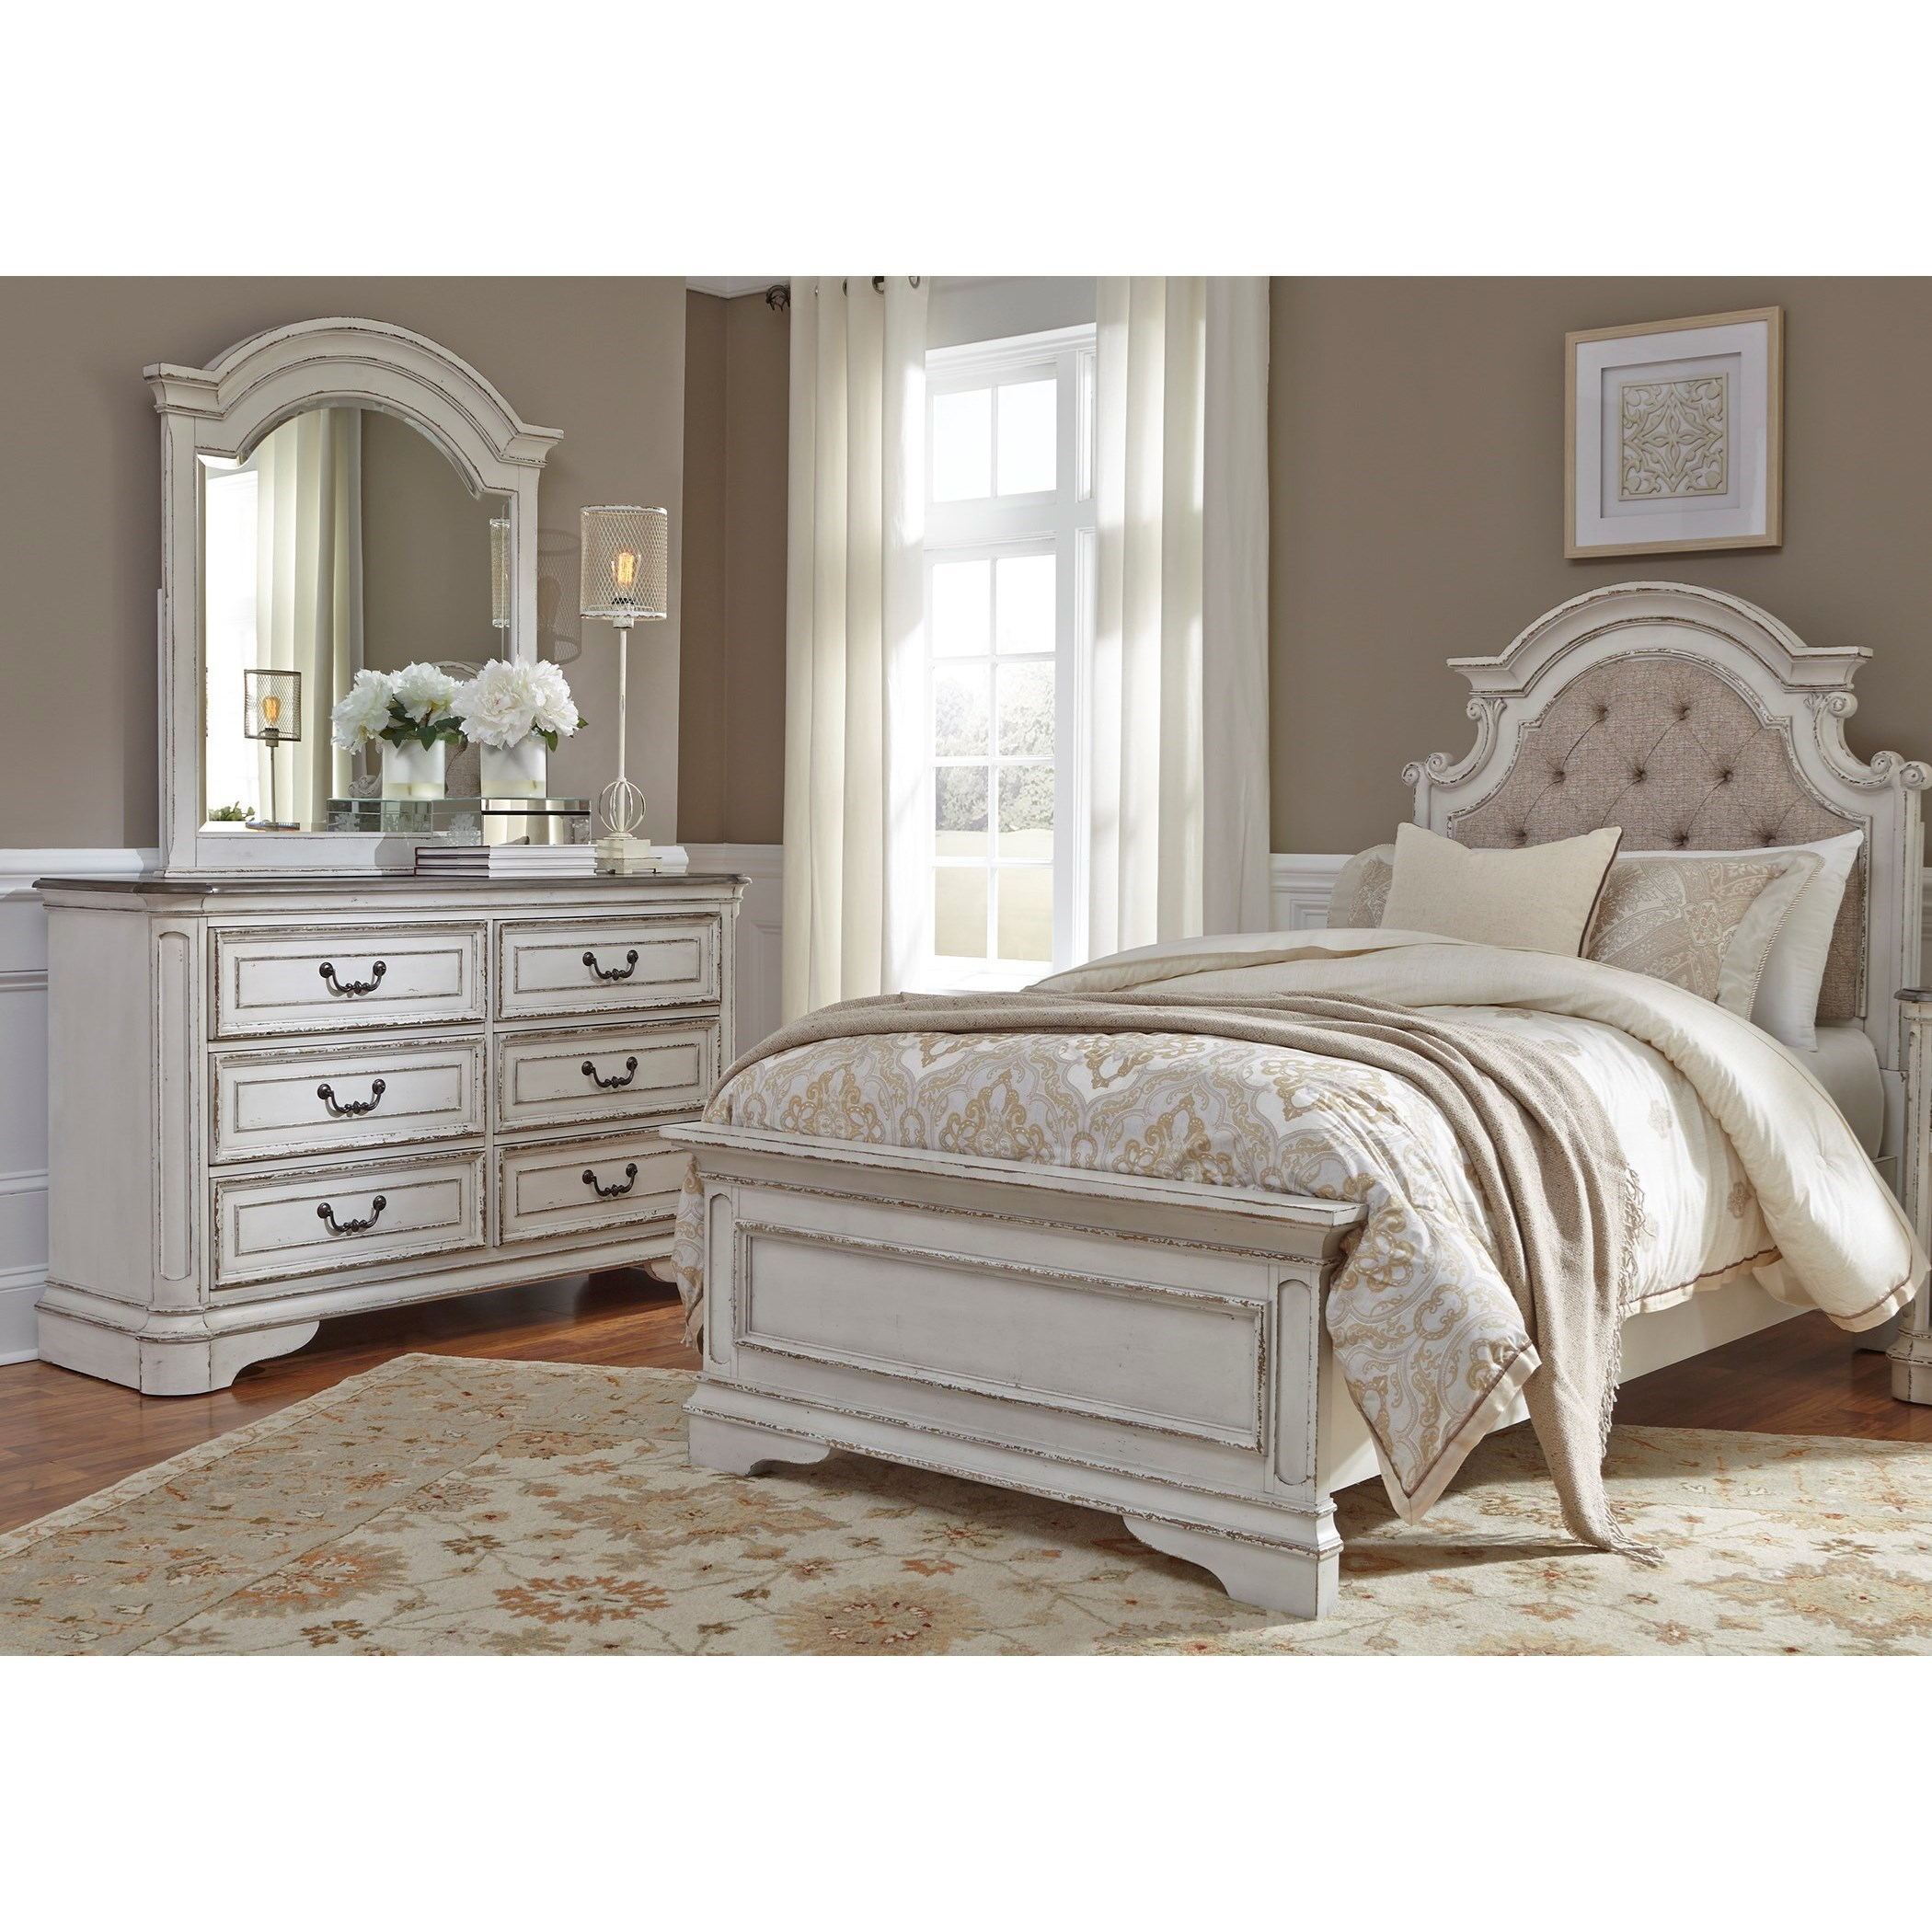 Magnolia Manor Twin Bedroom Group by Liberty Furniture at Zak's Home